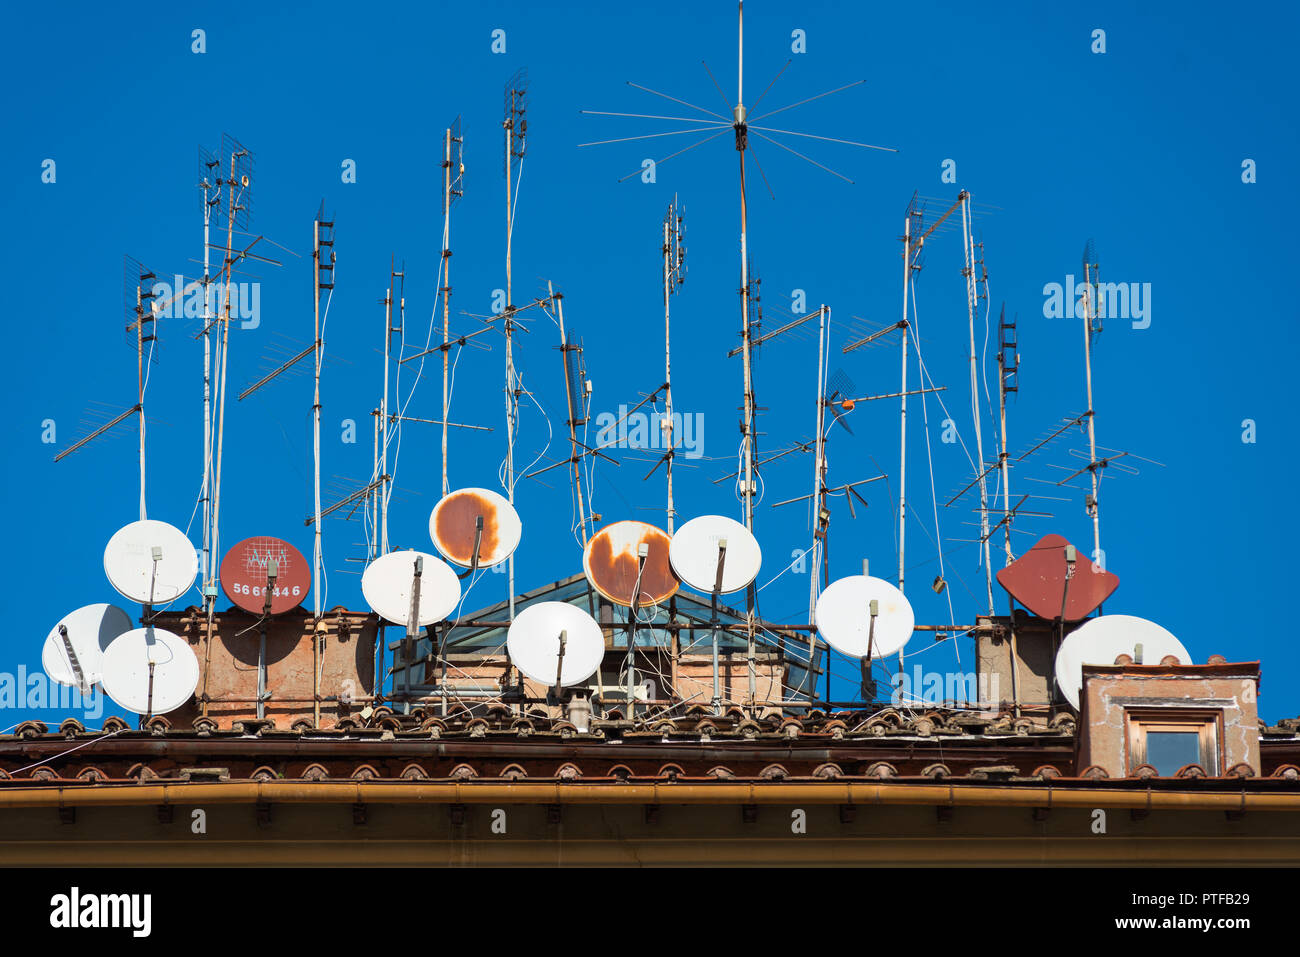 Rusty old aerials and satellite dishes on a building in Trastevere, Rome, Italy. - Stock Image